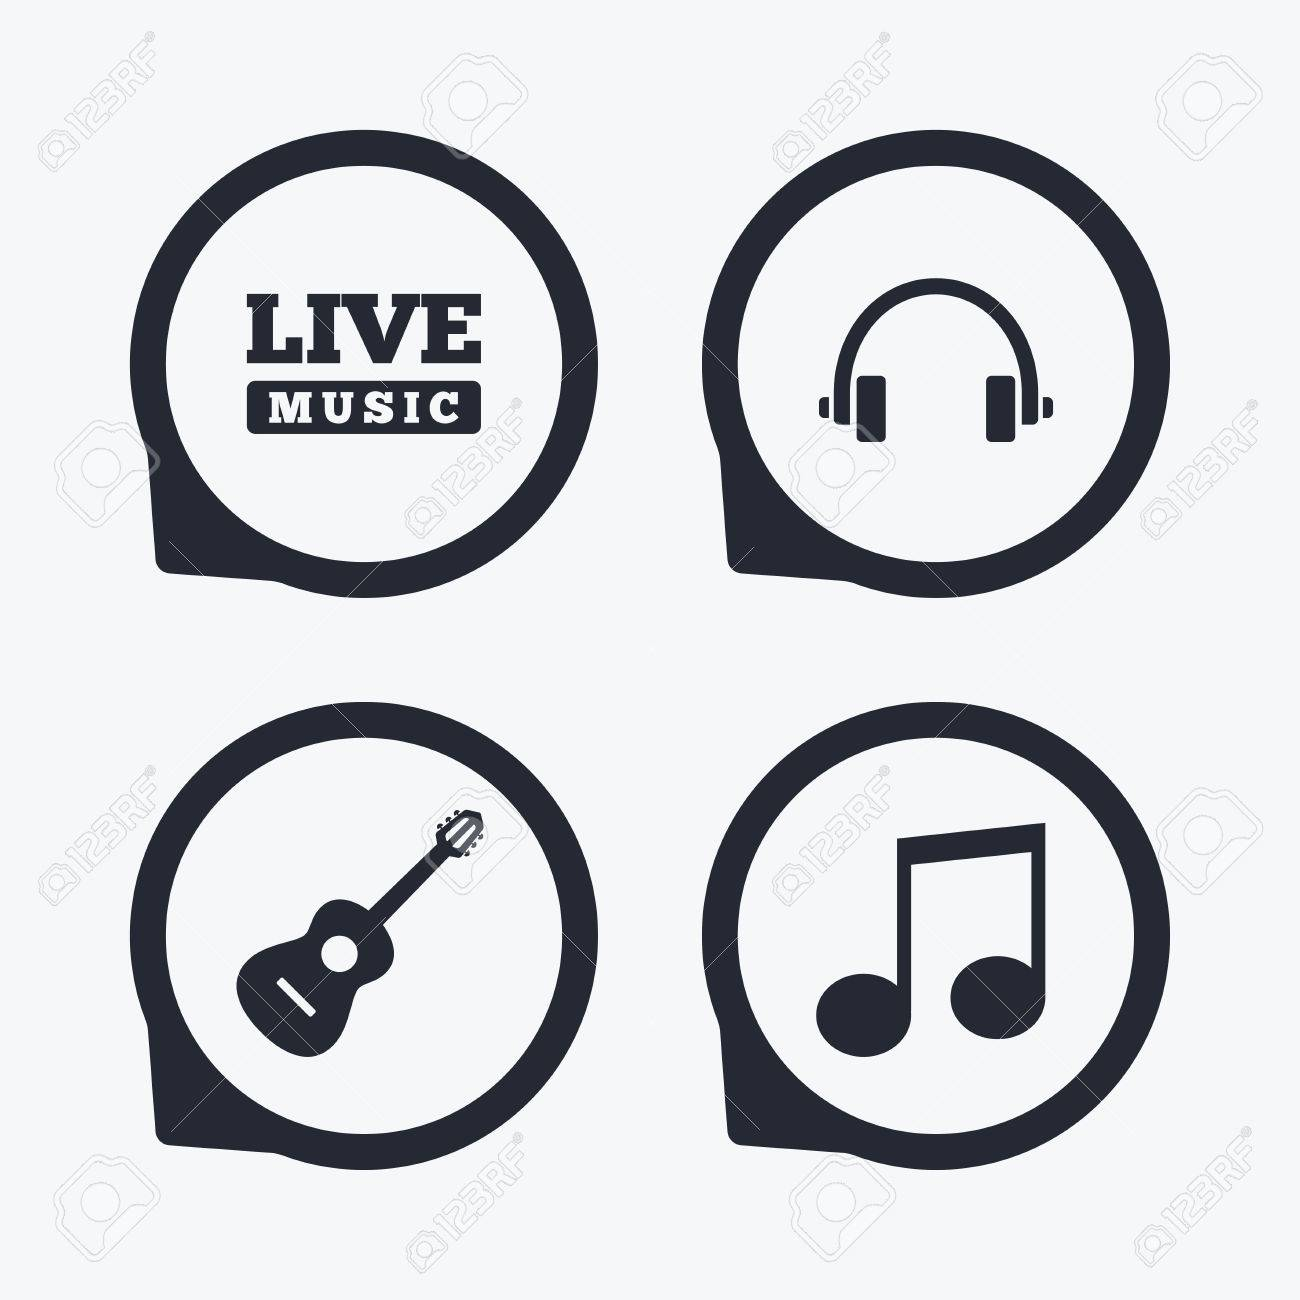 Musical elements icons musical note key and live music symbols musical elements icons musical note key and live music symbols headphones and acoustic guitar biocorpaavc Images